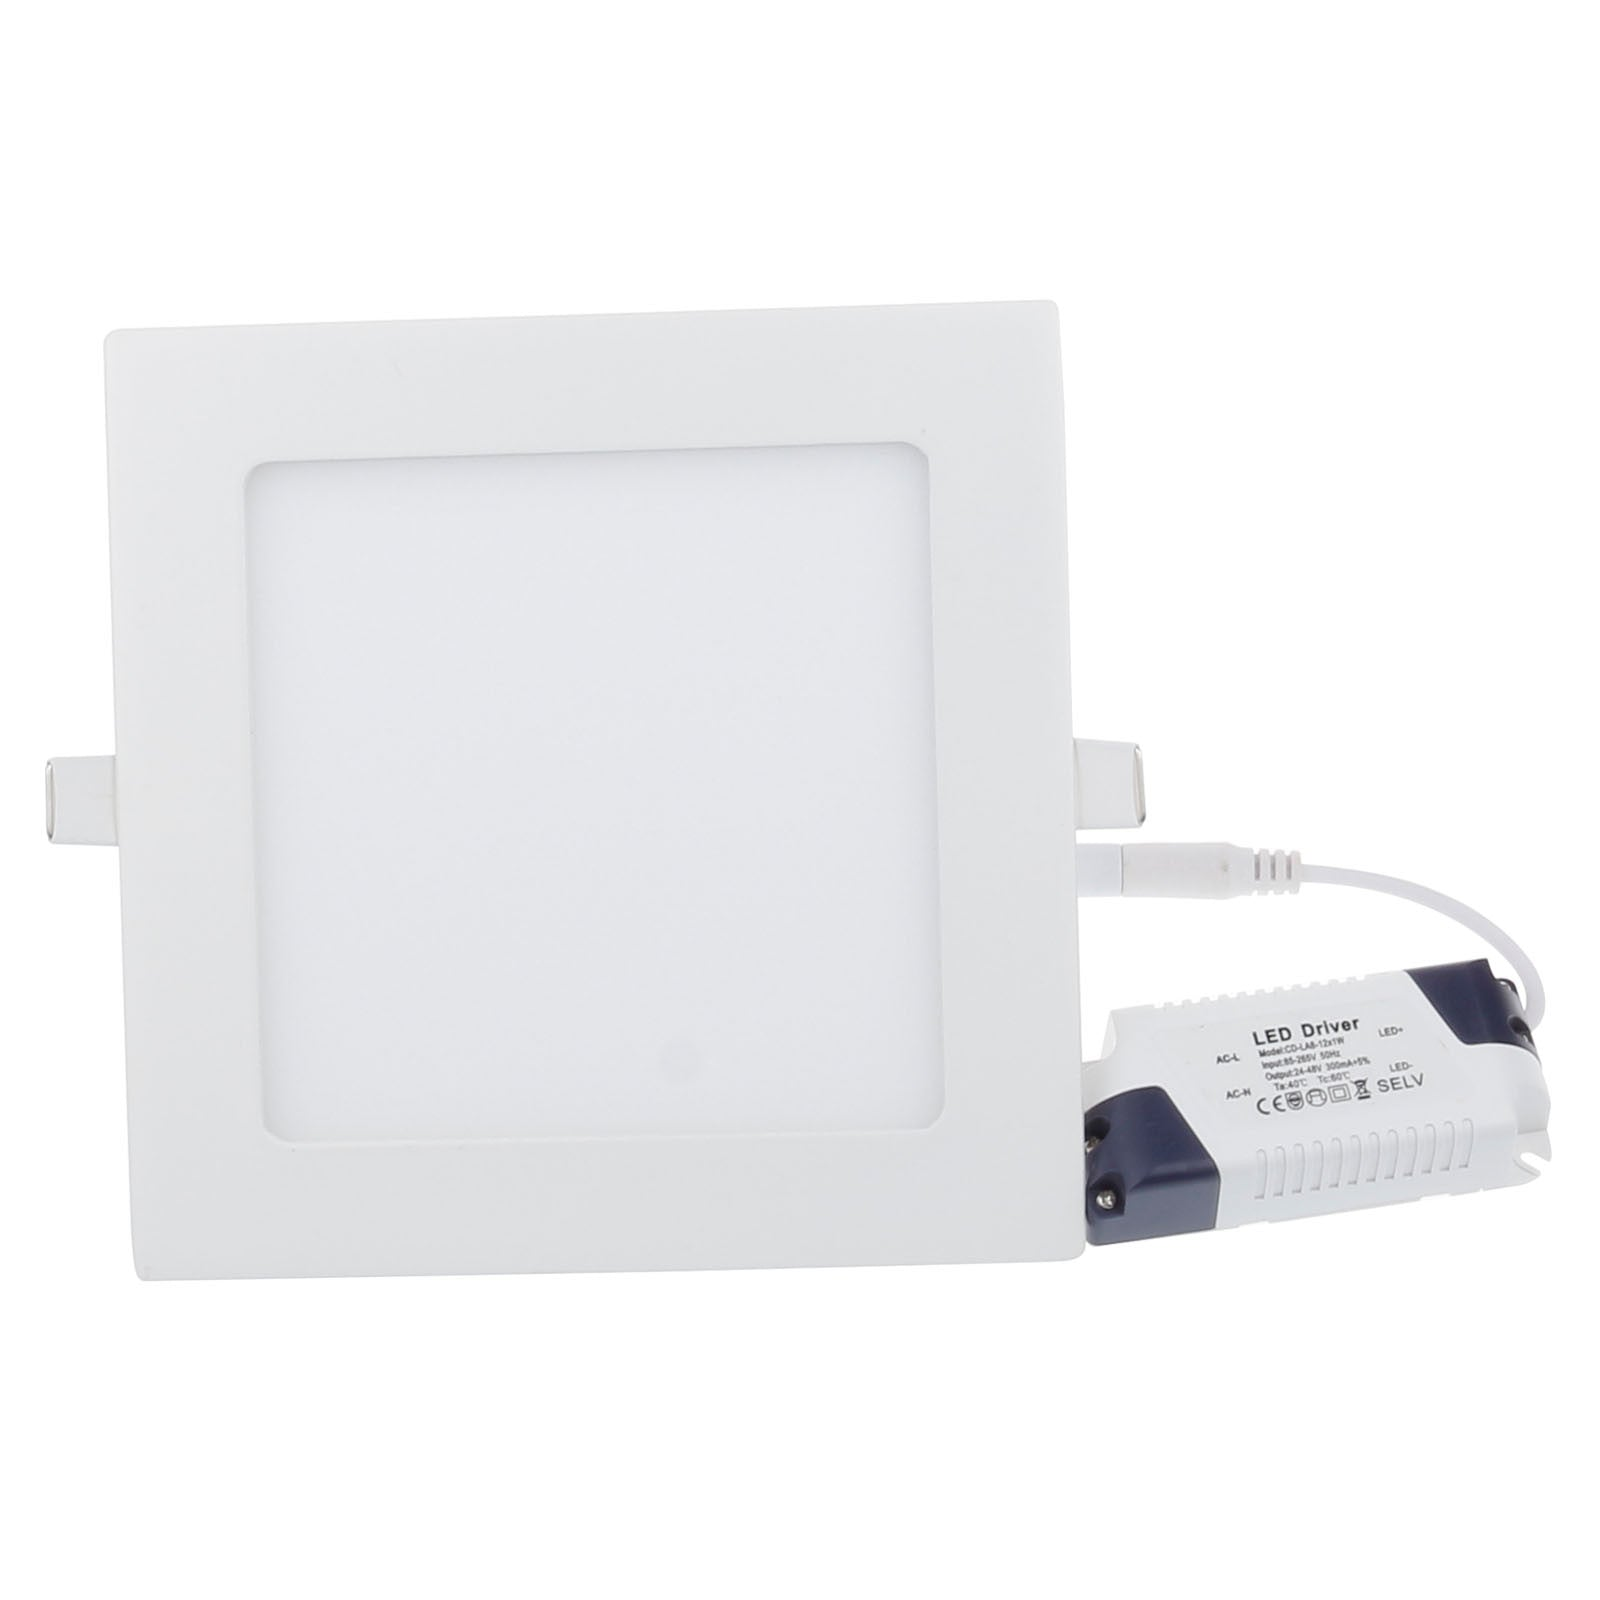 12W Recessed Square Shape LED Panel Light Dimmable Cool White Lamp Downlight AC 85-265V - sweet-casa.com